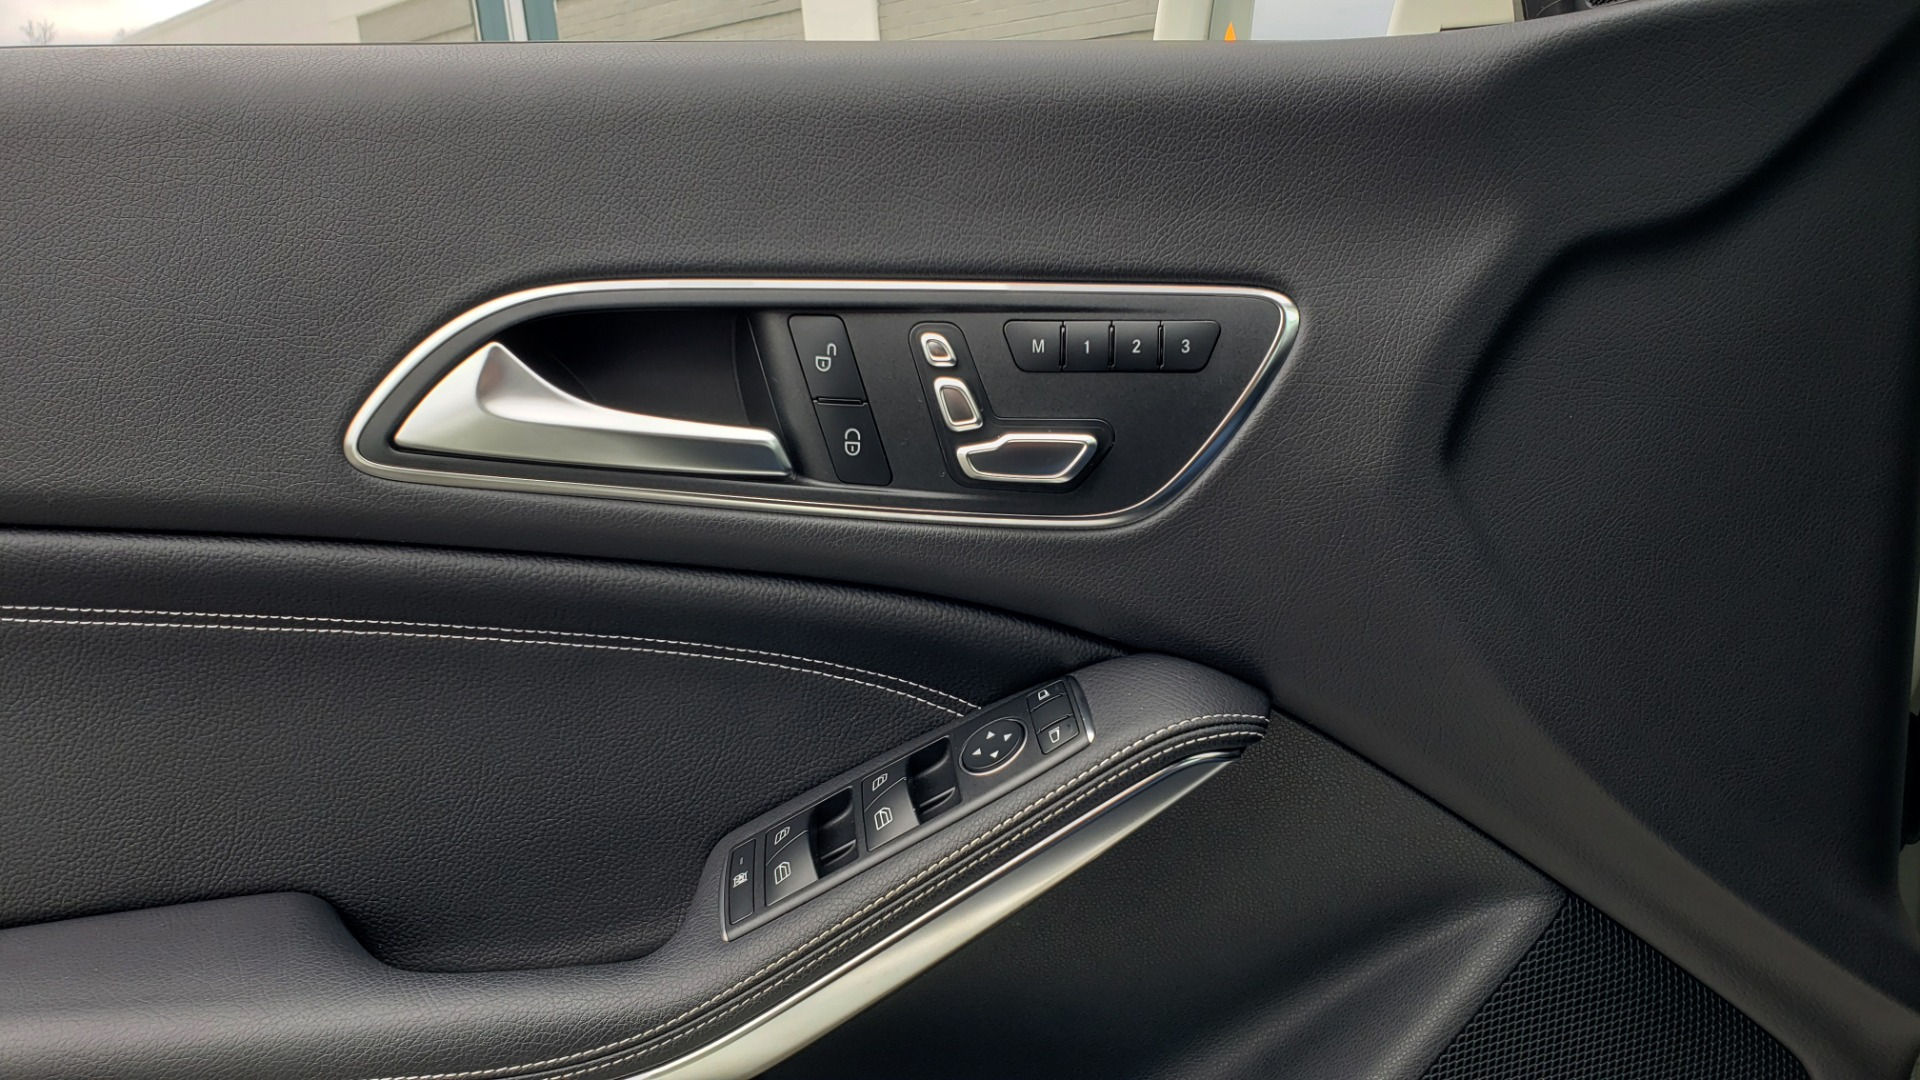 Used 2018 Mercedes-Benz CLA 250 PREMIUM / NAV / PANO-ROOF / APPLE CARPLAY / REARVIEW for sale $23,995 at Formula Imports in Charlotte NC 28227 38